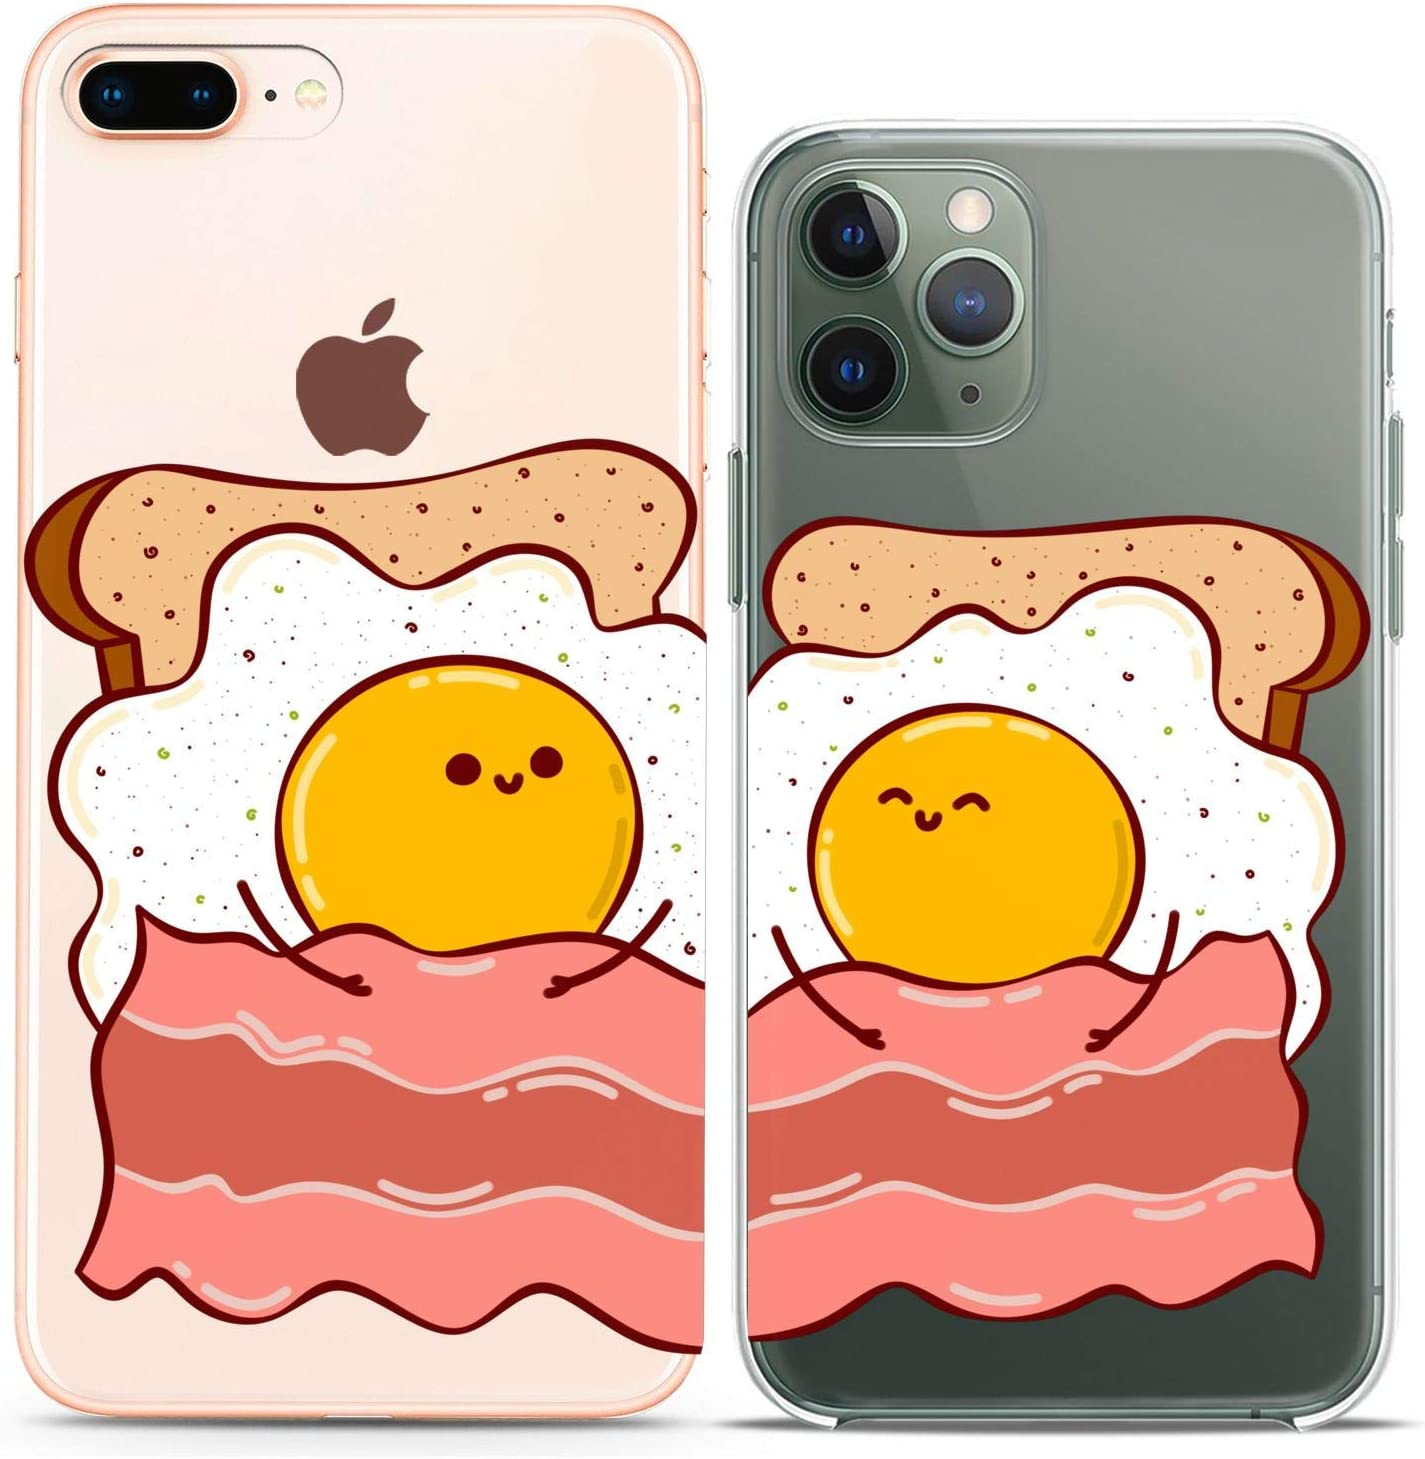 Cavka Matching Couple Cases Replacement for iPhone 12 Pro 5G Mini 11 Xs Max 6s 8 Plus 7 Xr 10 SE X 5 Eggs Flexible Bacon Toast Funny Sandwich Slim fit Cute Pair Soft Friends Clear Cover Print Design